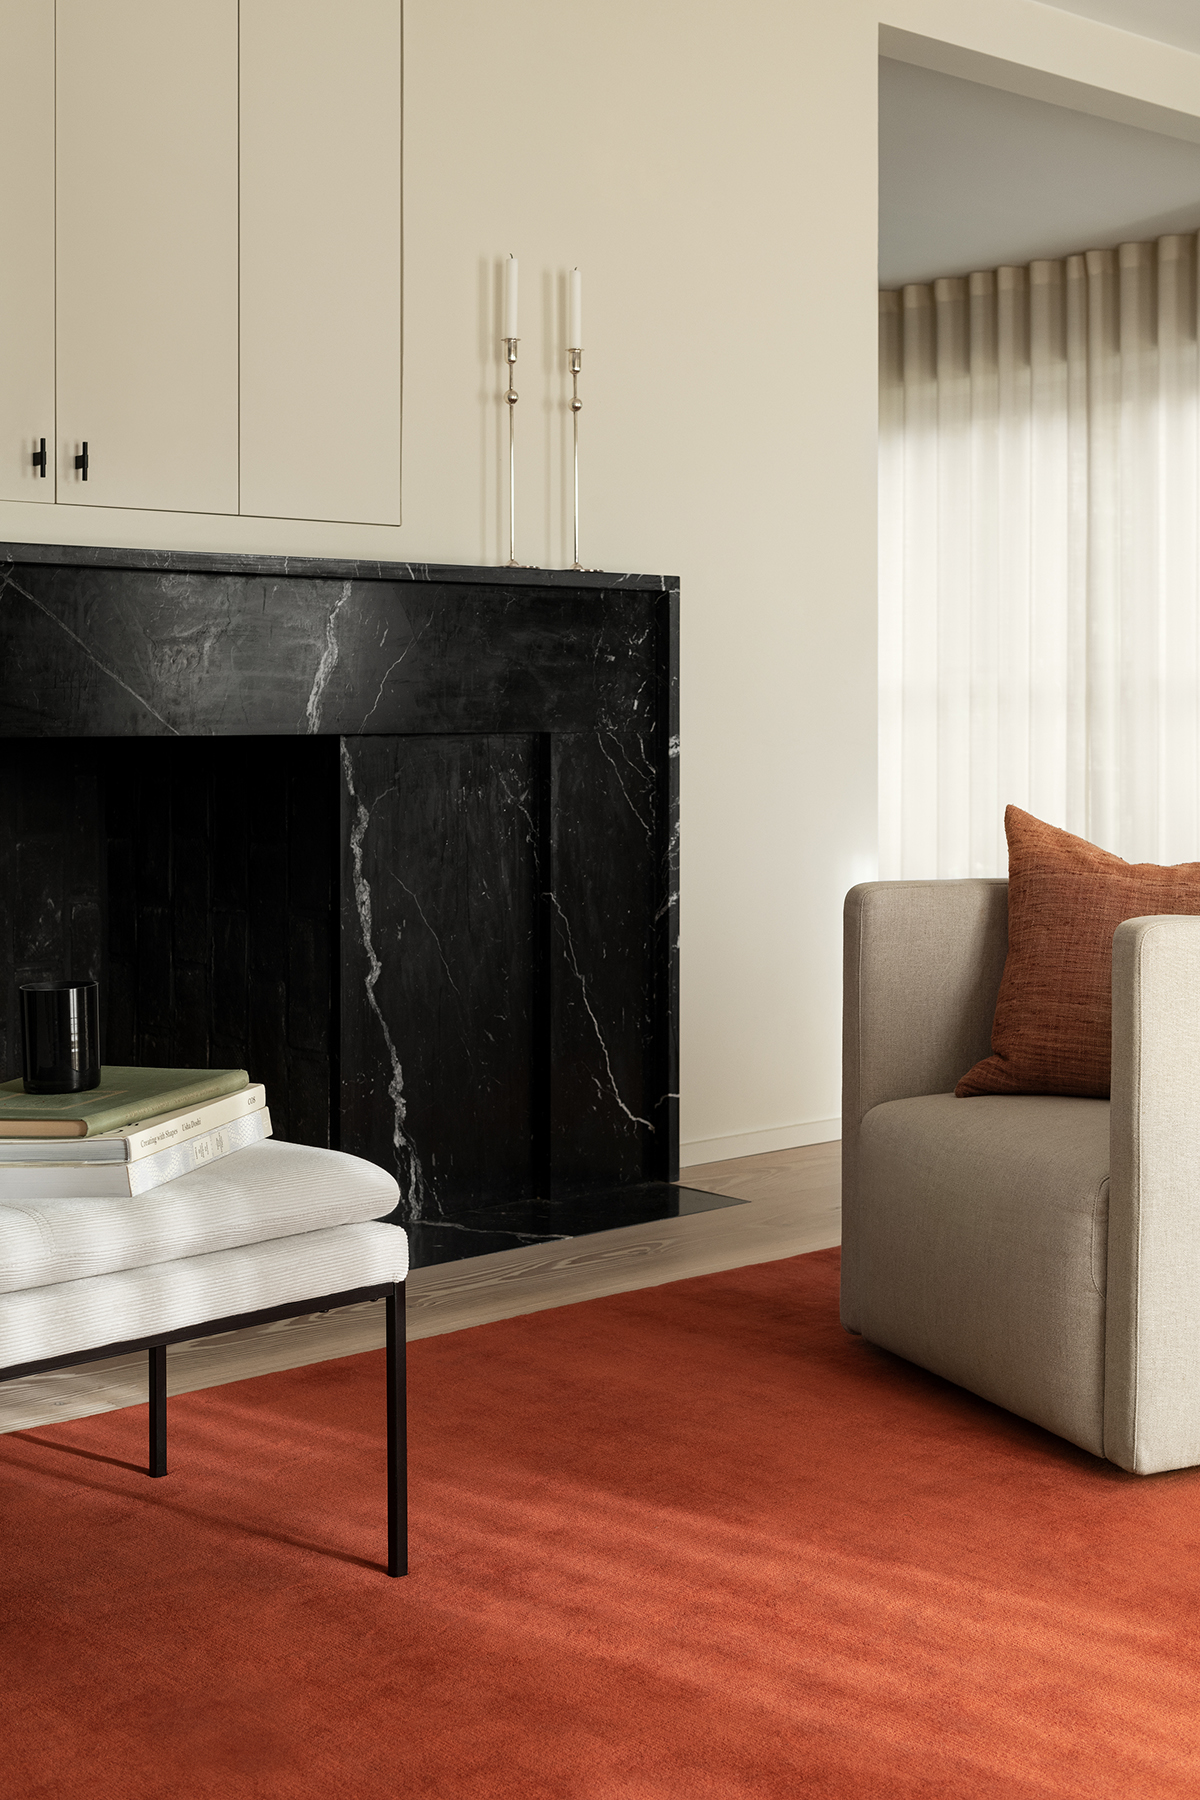 The Grand rug in Brick Red shown in a classy apartment with a large fireplace in black stone.